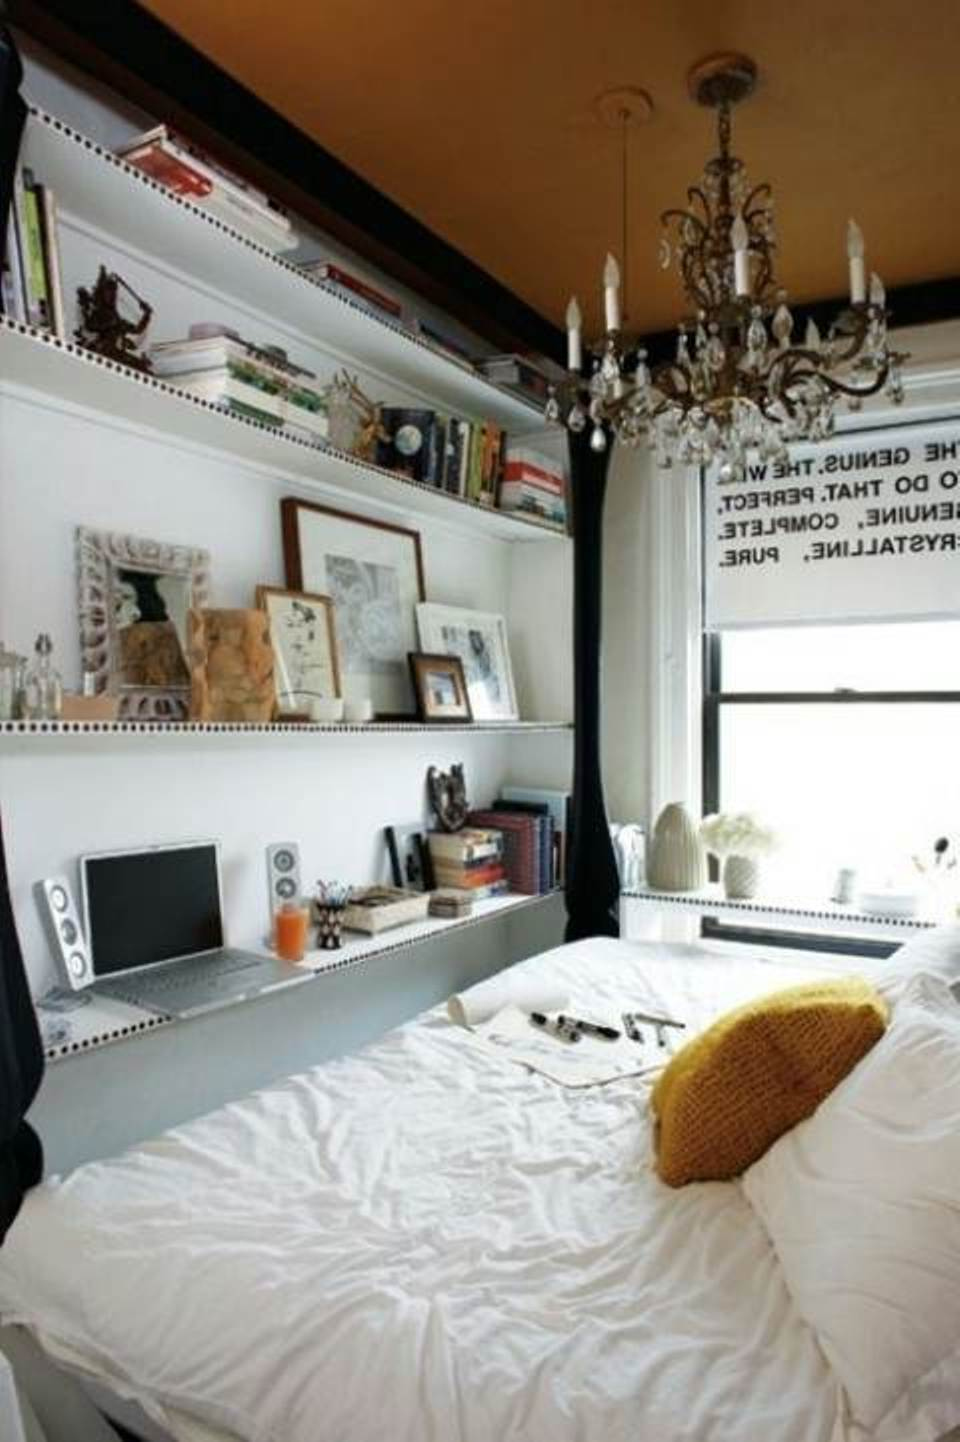 60 Classy And Marvelous Bedroom Wall Design Ideas - The ... on Bedroom Wall Decor  id=11747